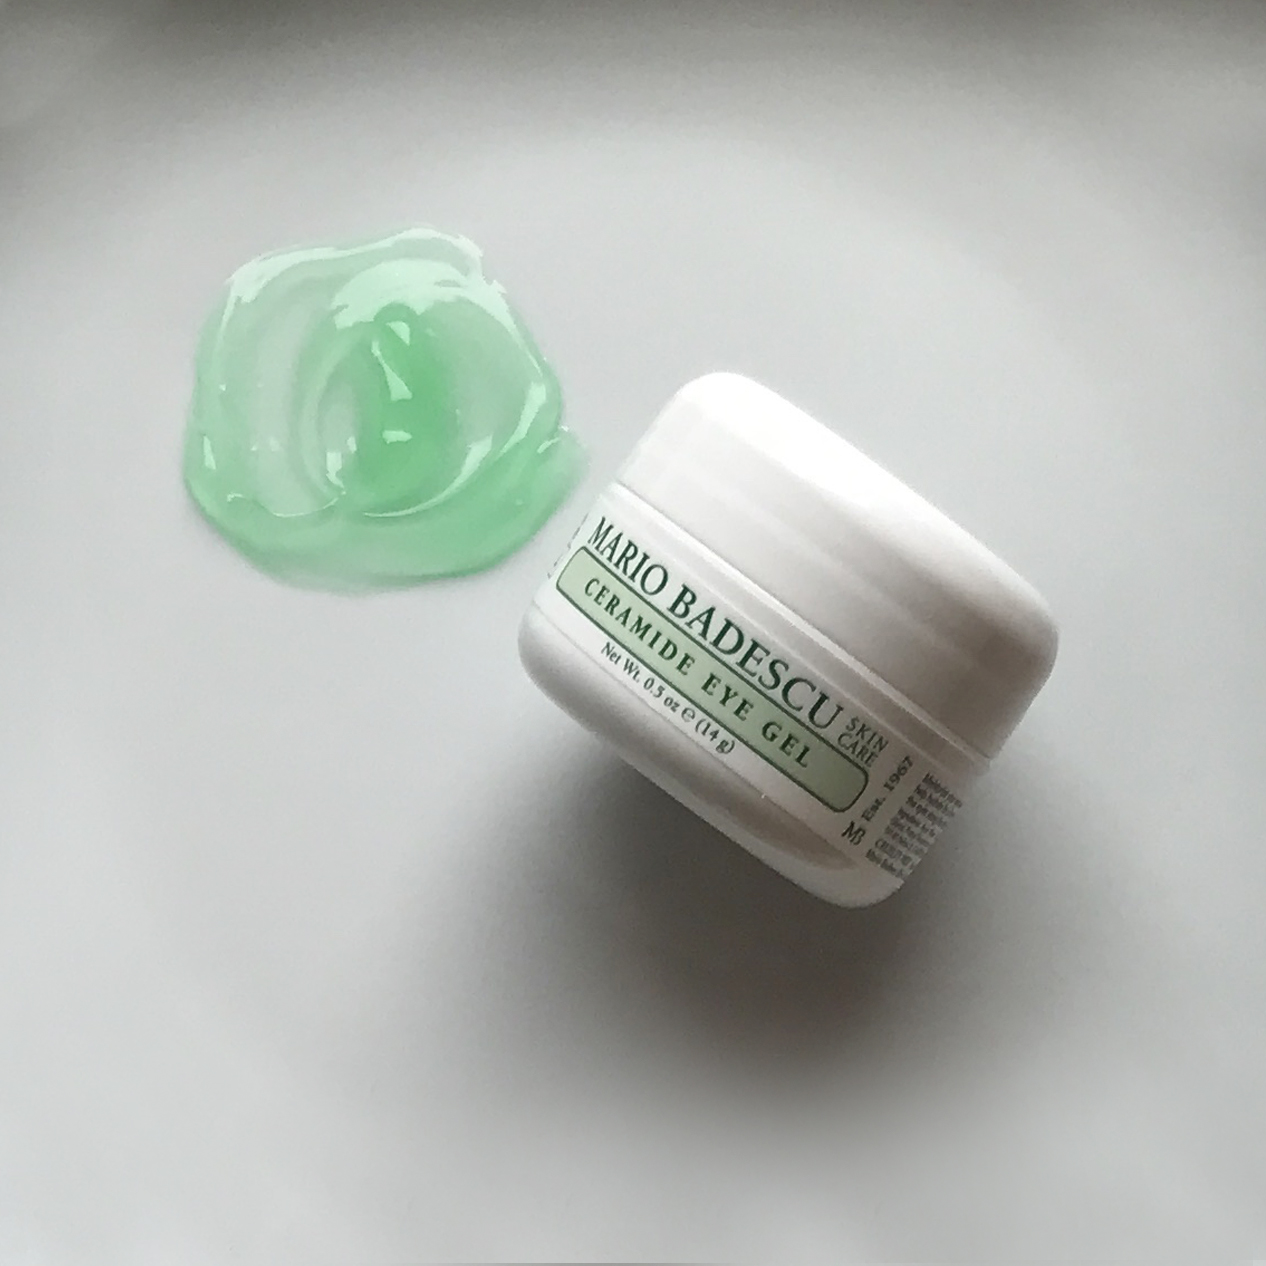 Mario Badescu Ceramide Eye Gel Swatch